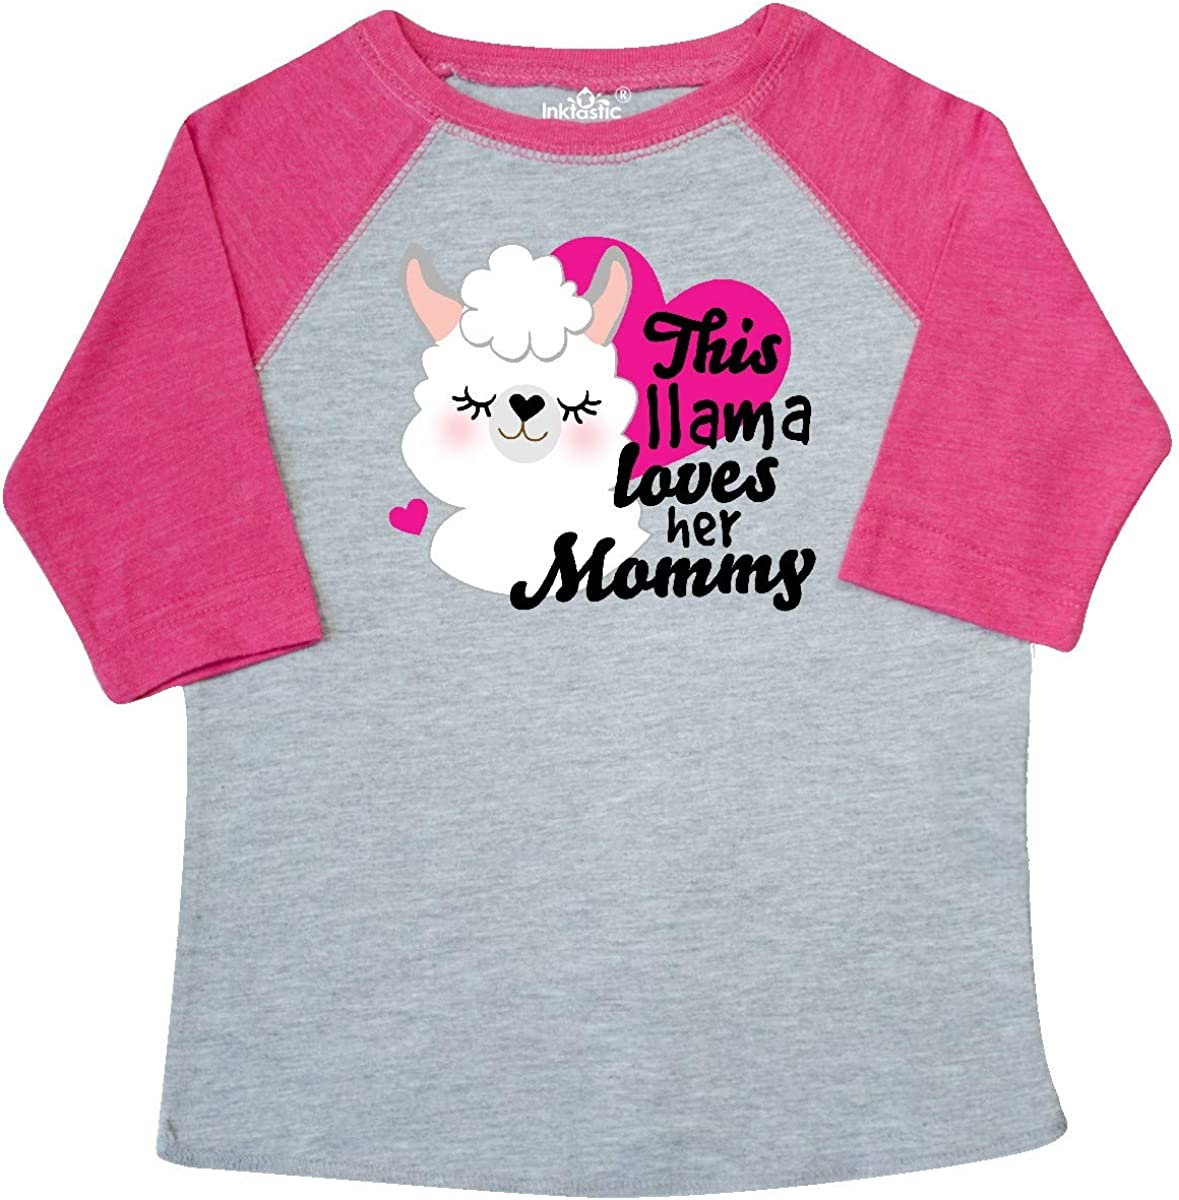 inktastic Valentines Day This Llama Loves Her Mommy Toddler T-Shirt